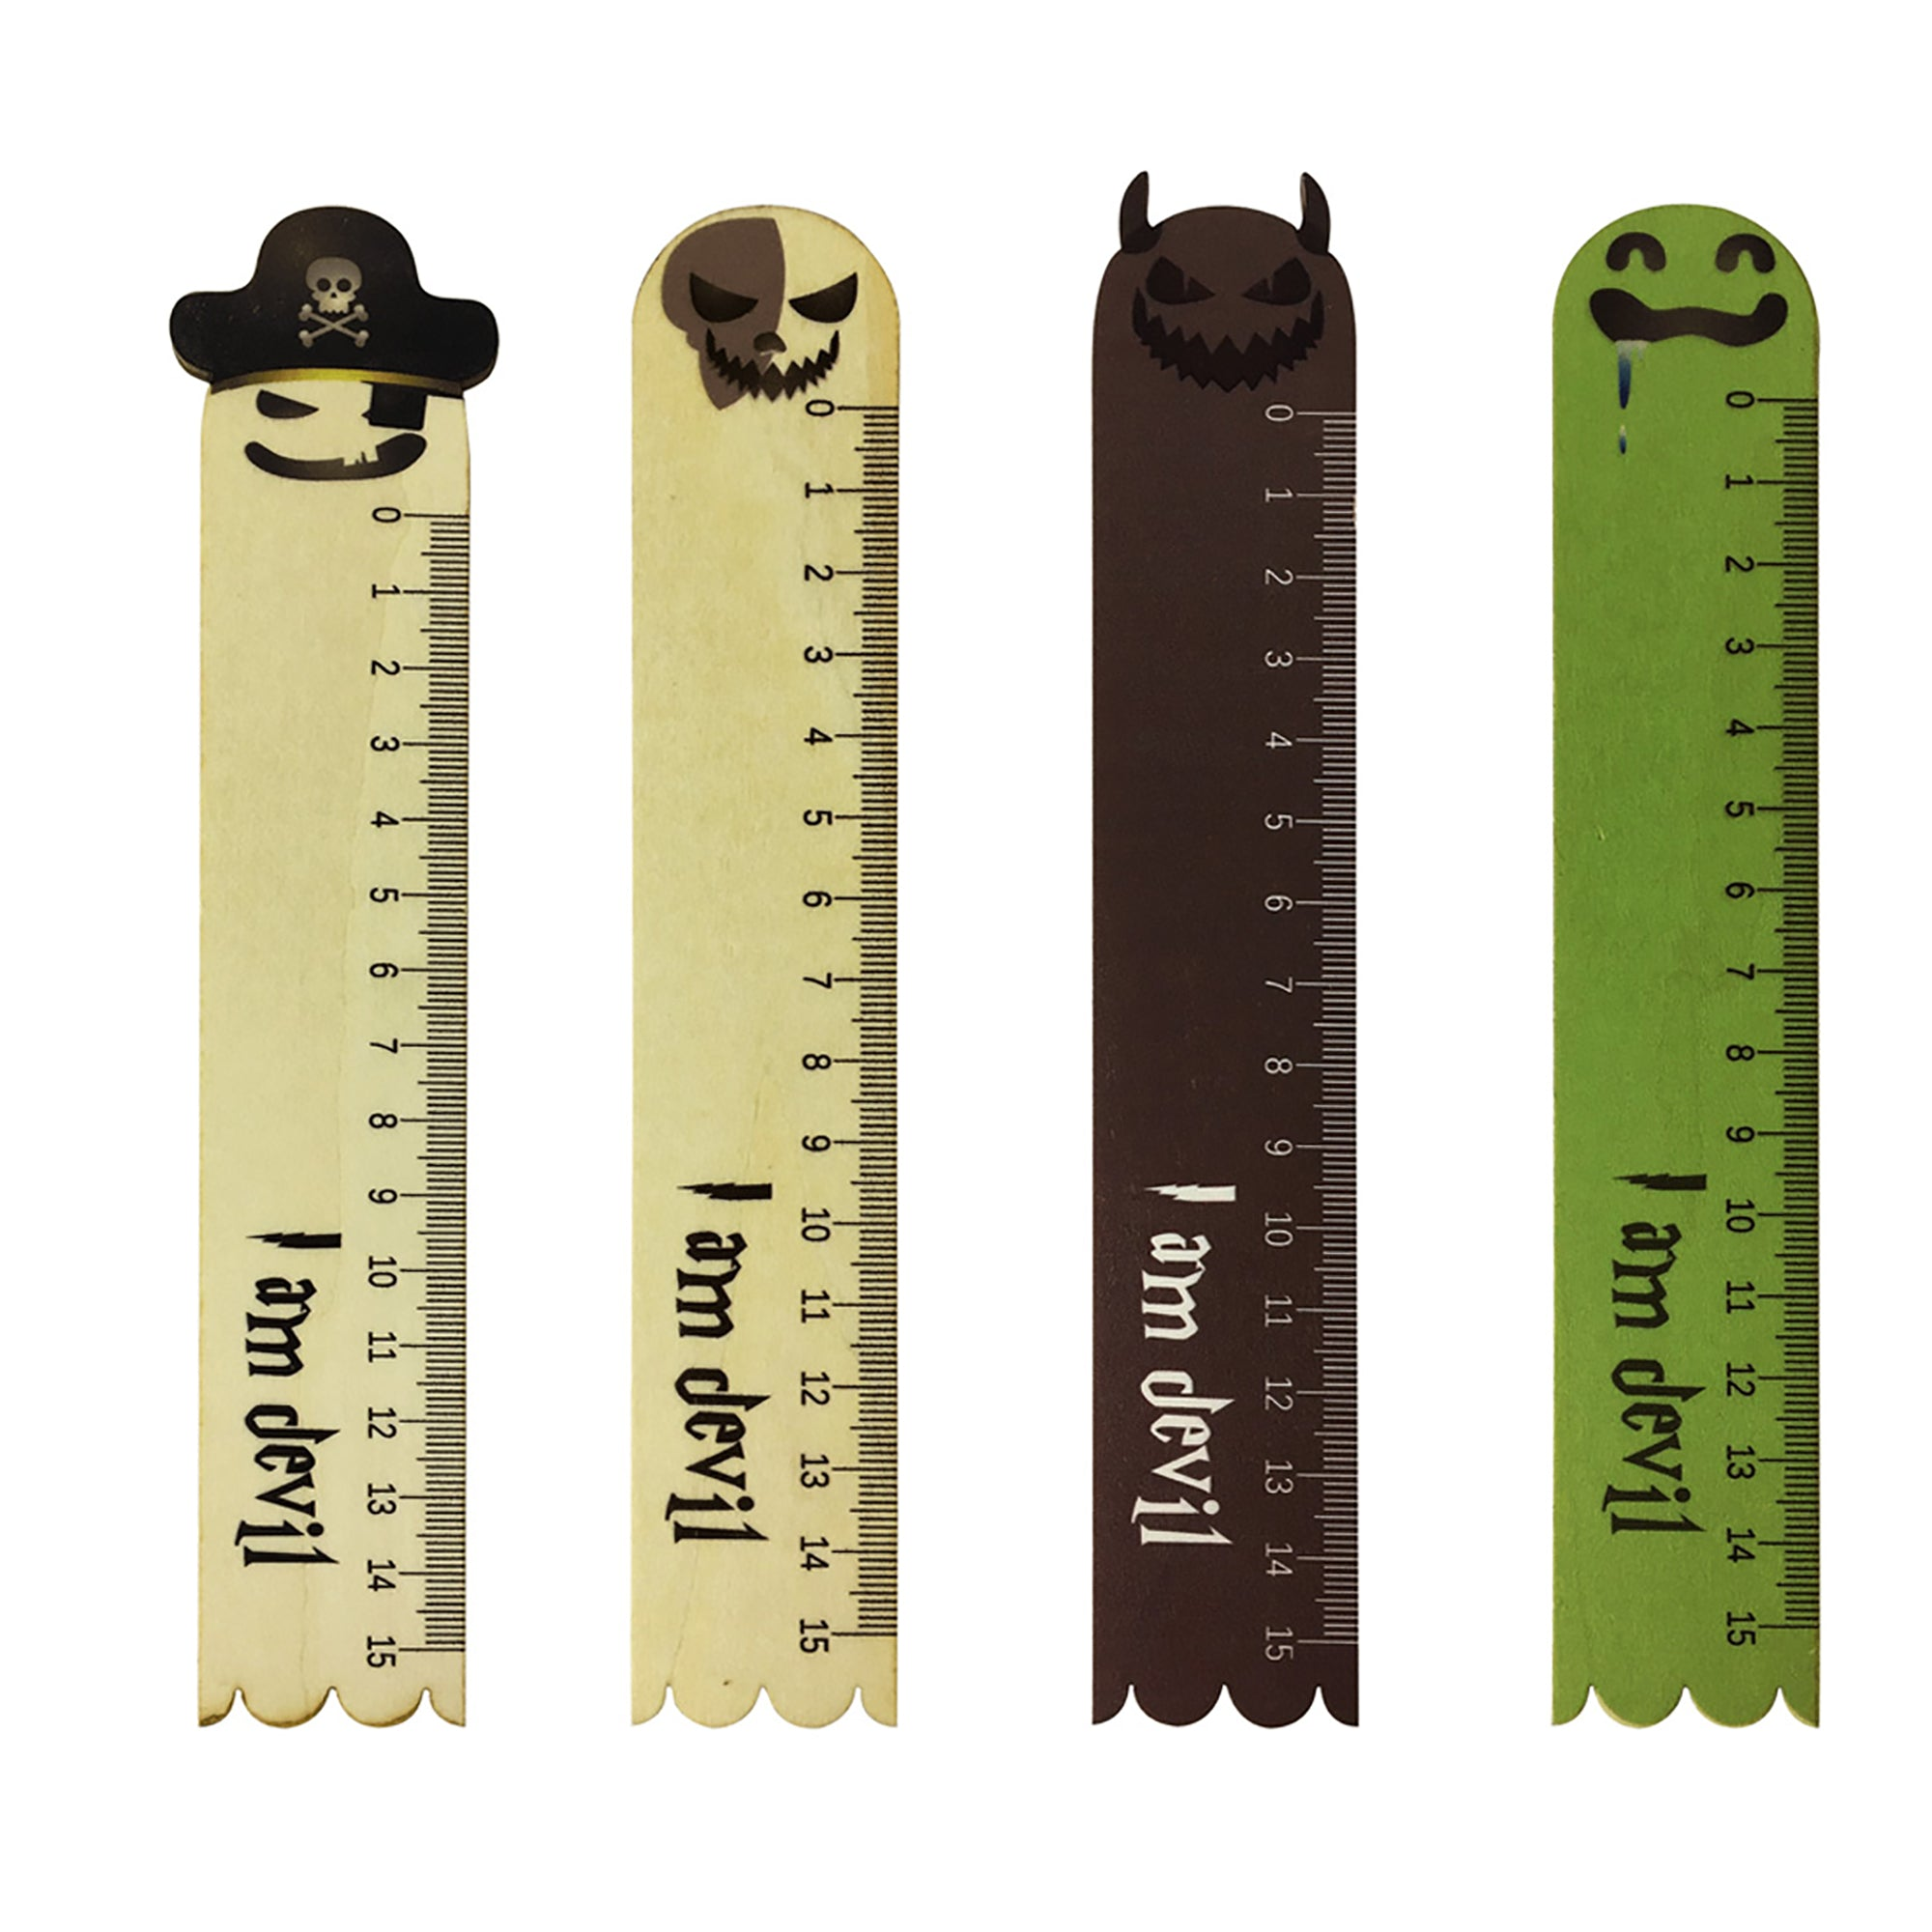 Devil Wooden Ruler - Set of 4